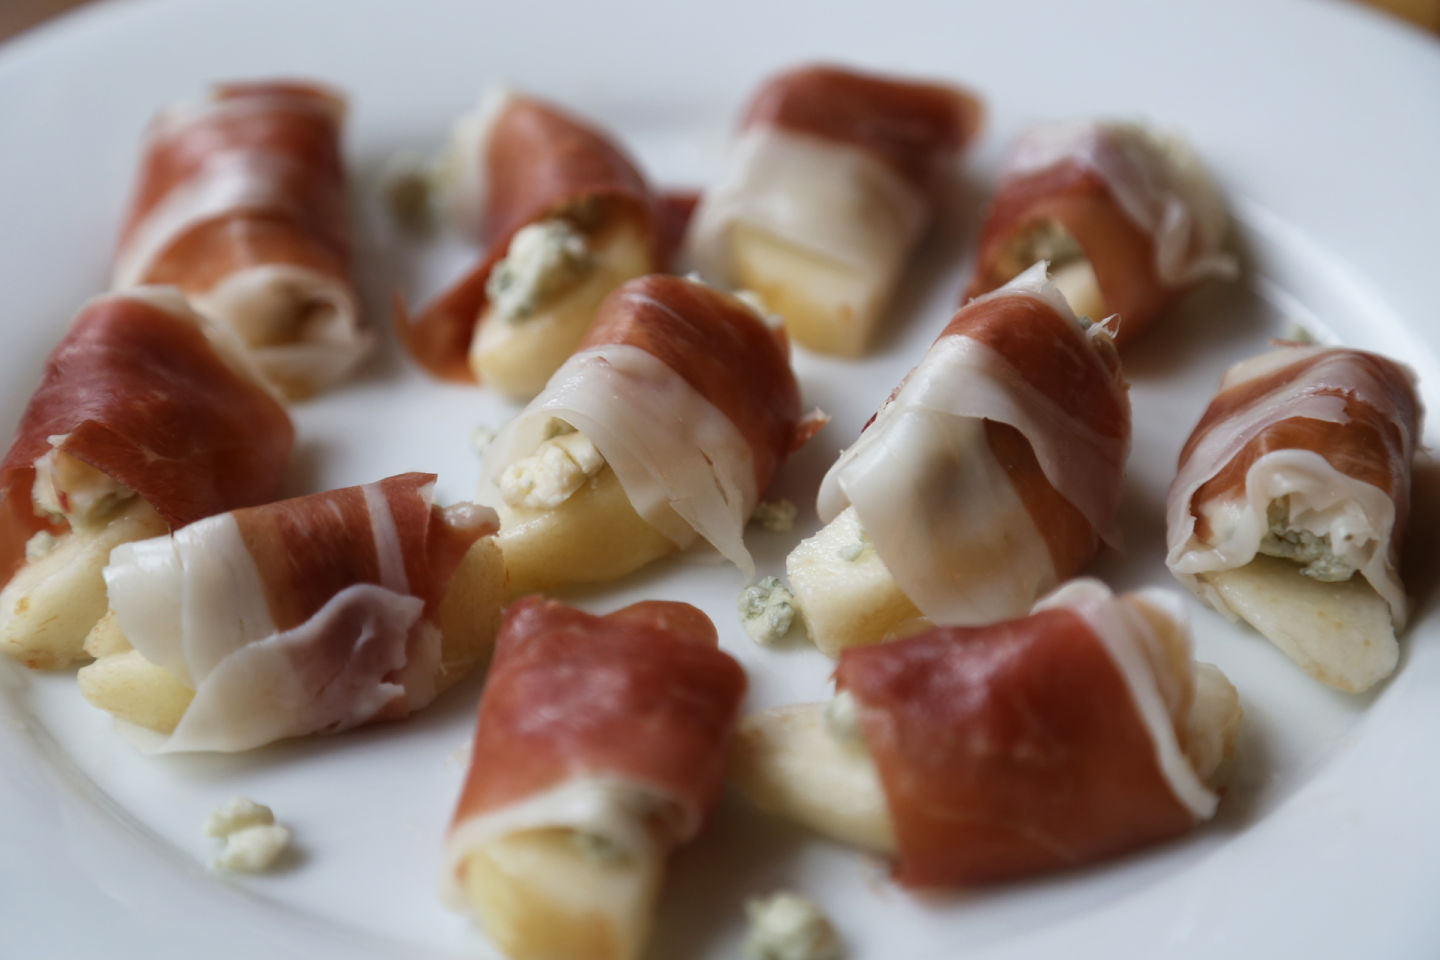 Prosciutto-Wrapped Pears with Gorgonzola Wendy Goodfriend